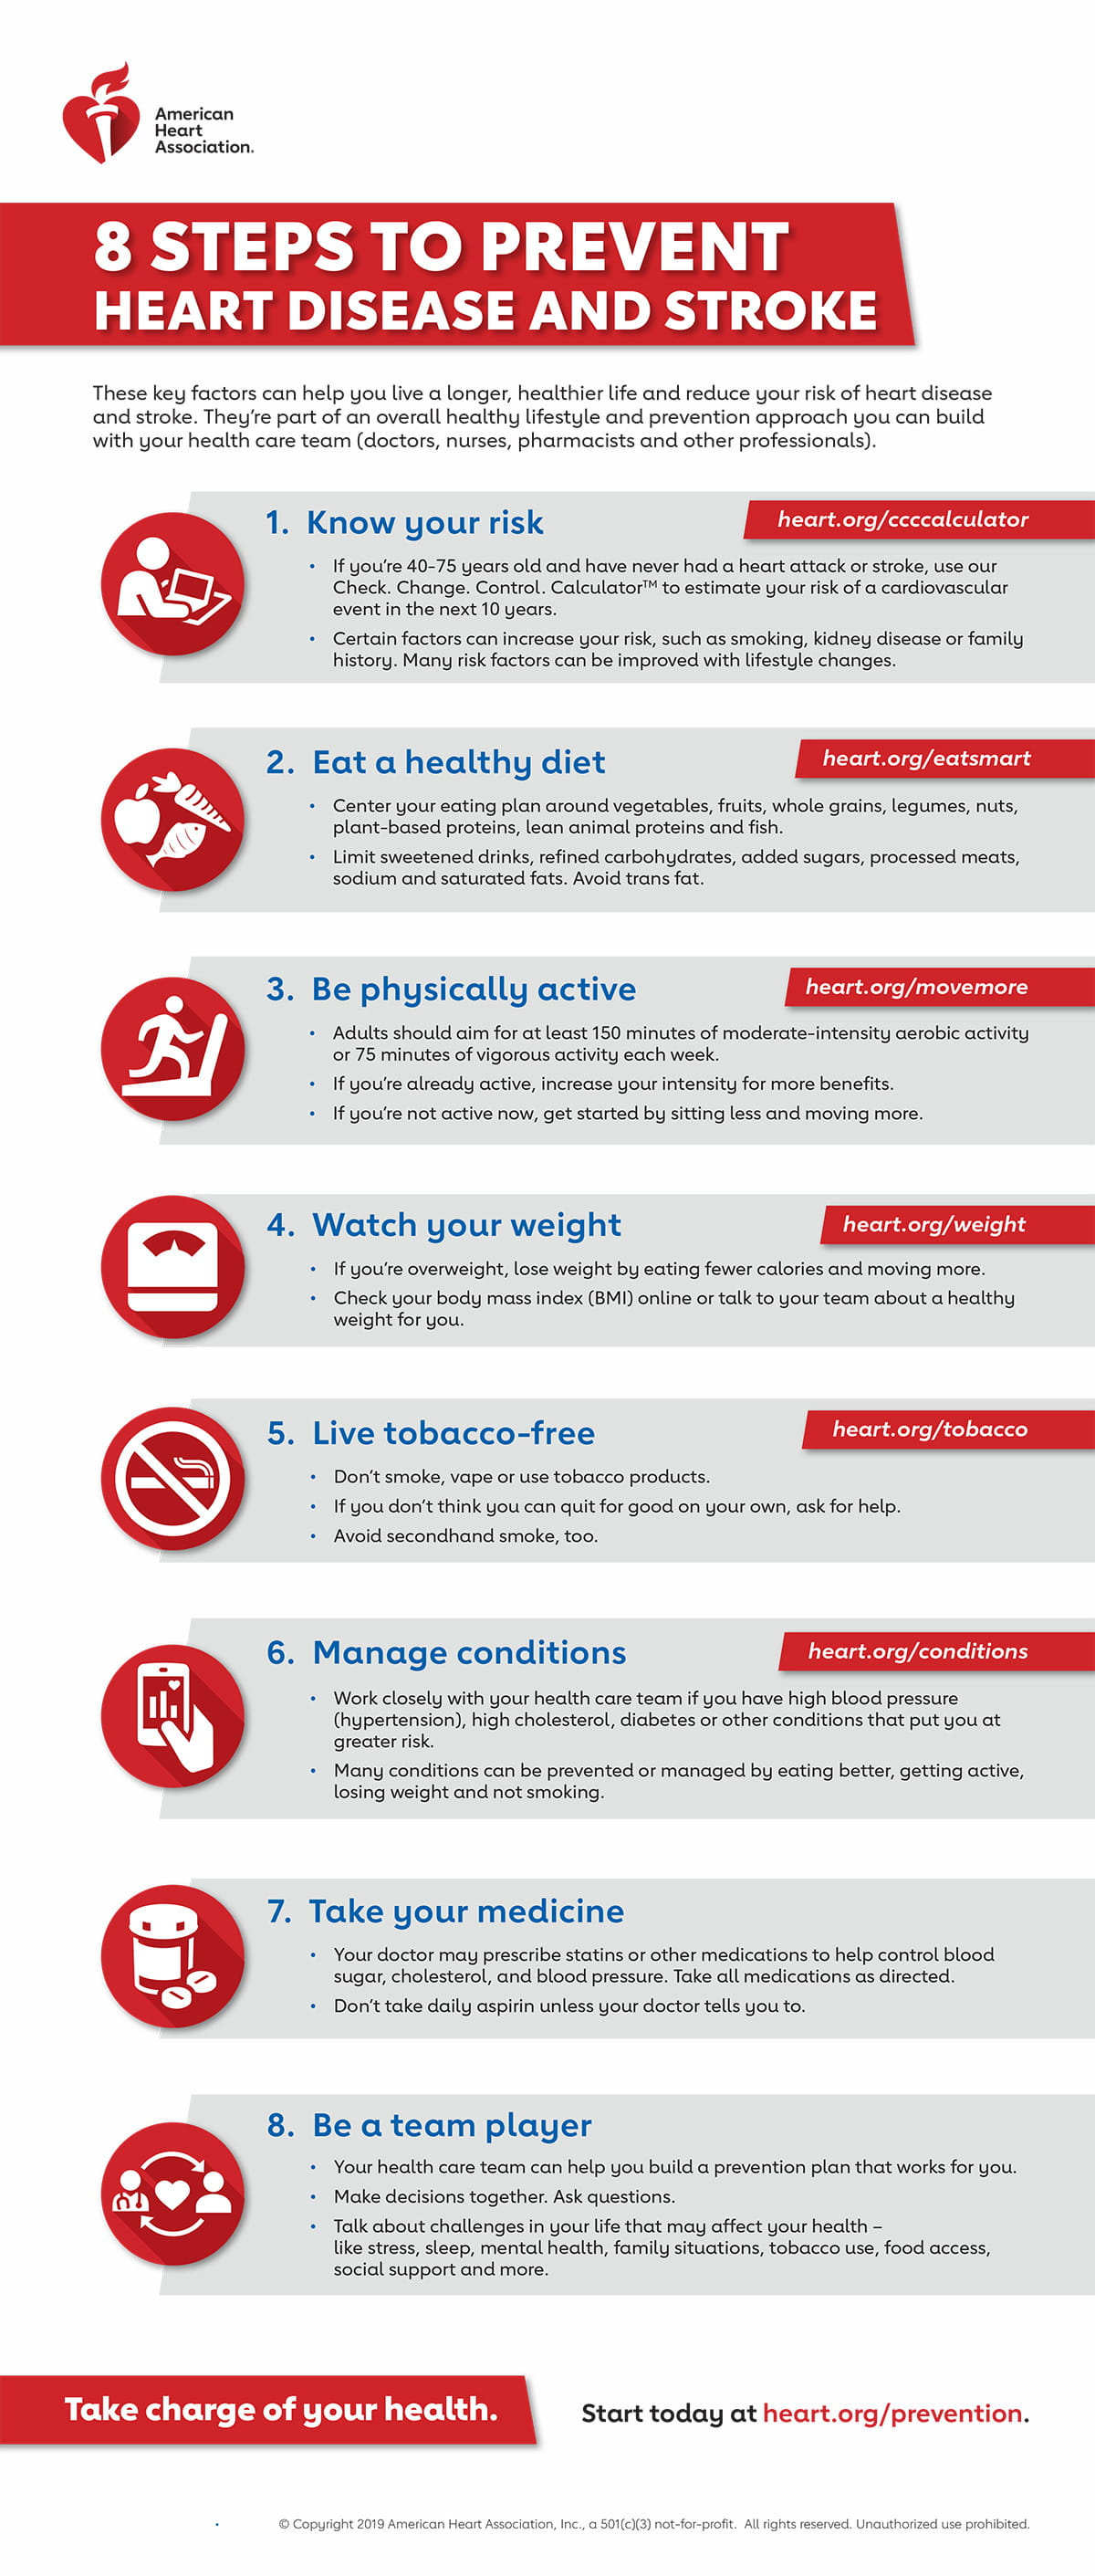 8 steps to prevent heart disease and stroke